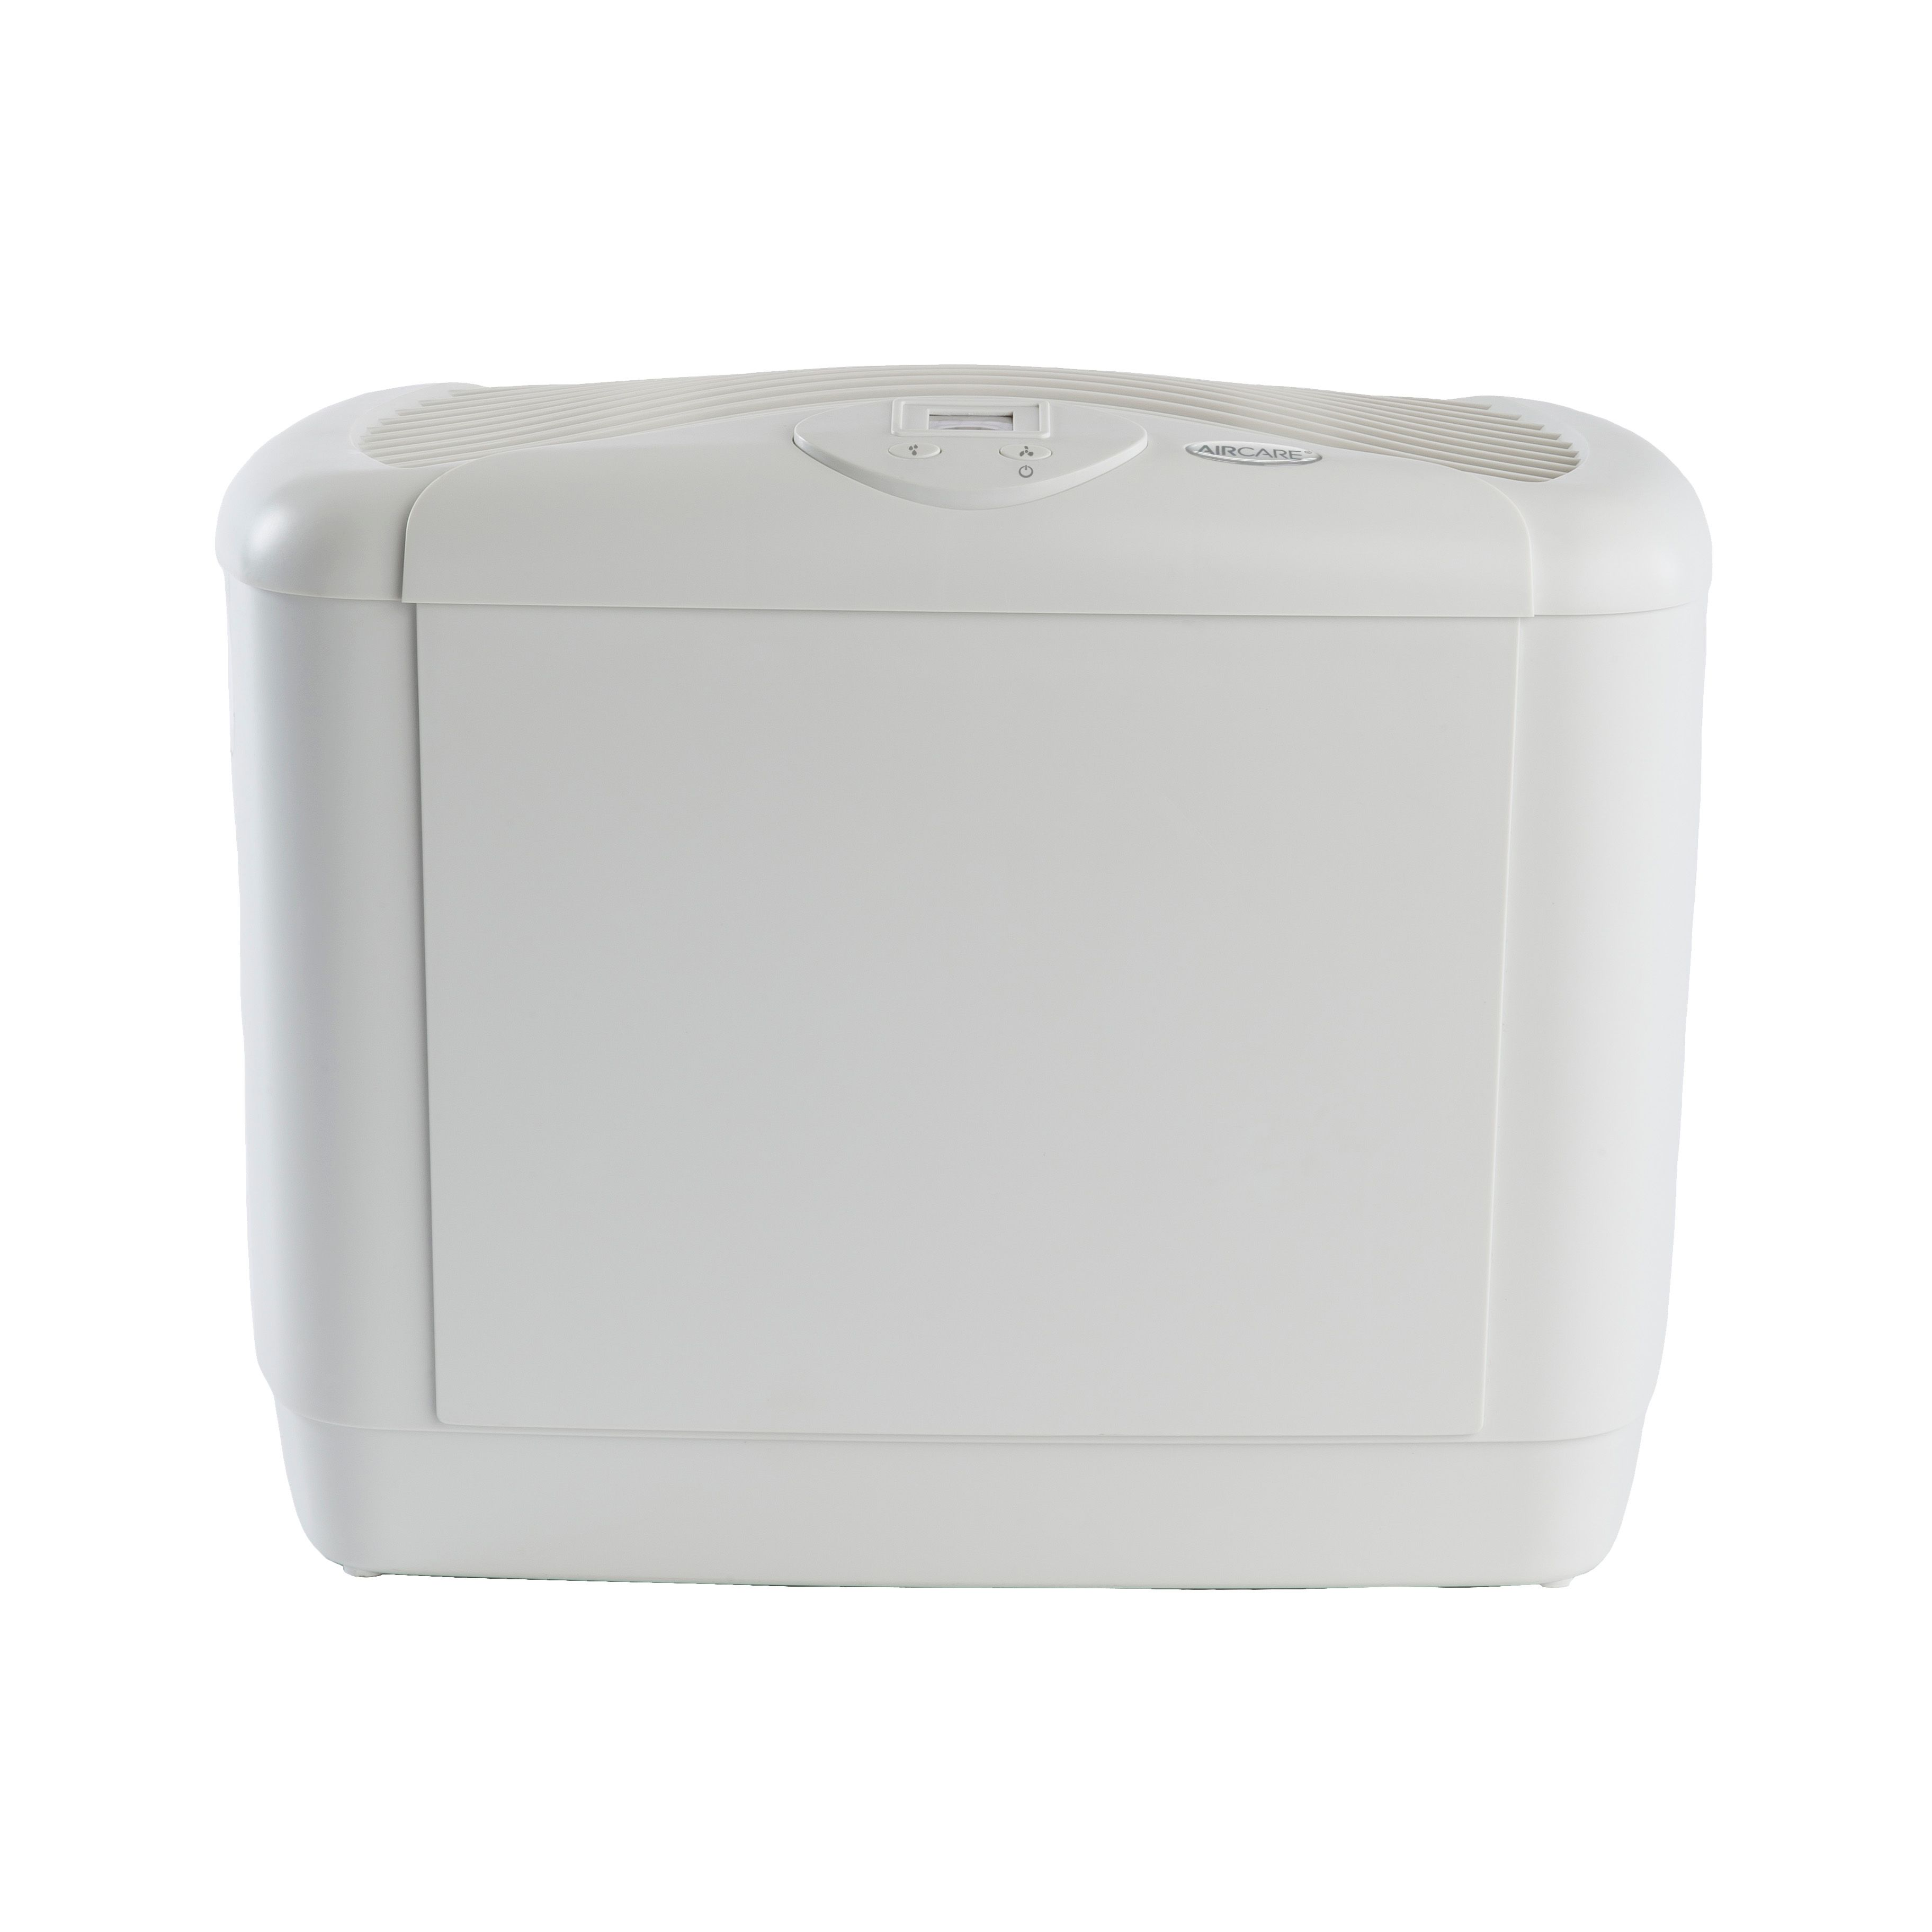 Image of AIRCARE 7V5D6 700 5 Gallon Output Multi-Room Humidifier - White